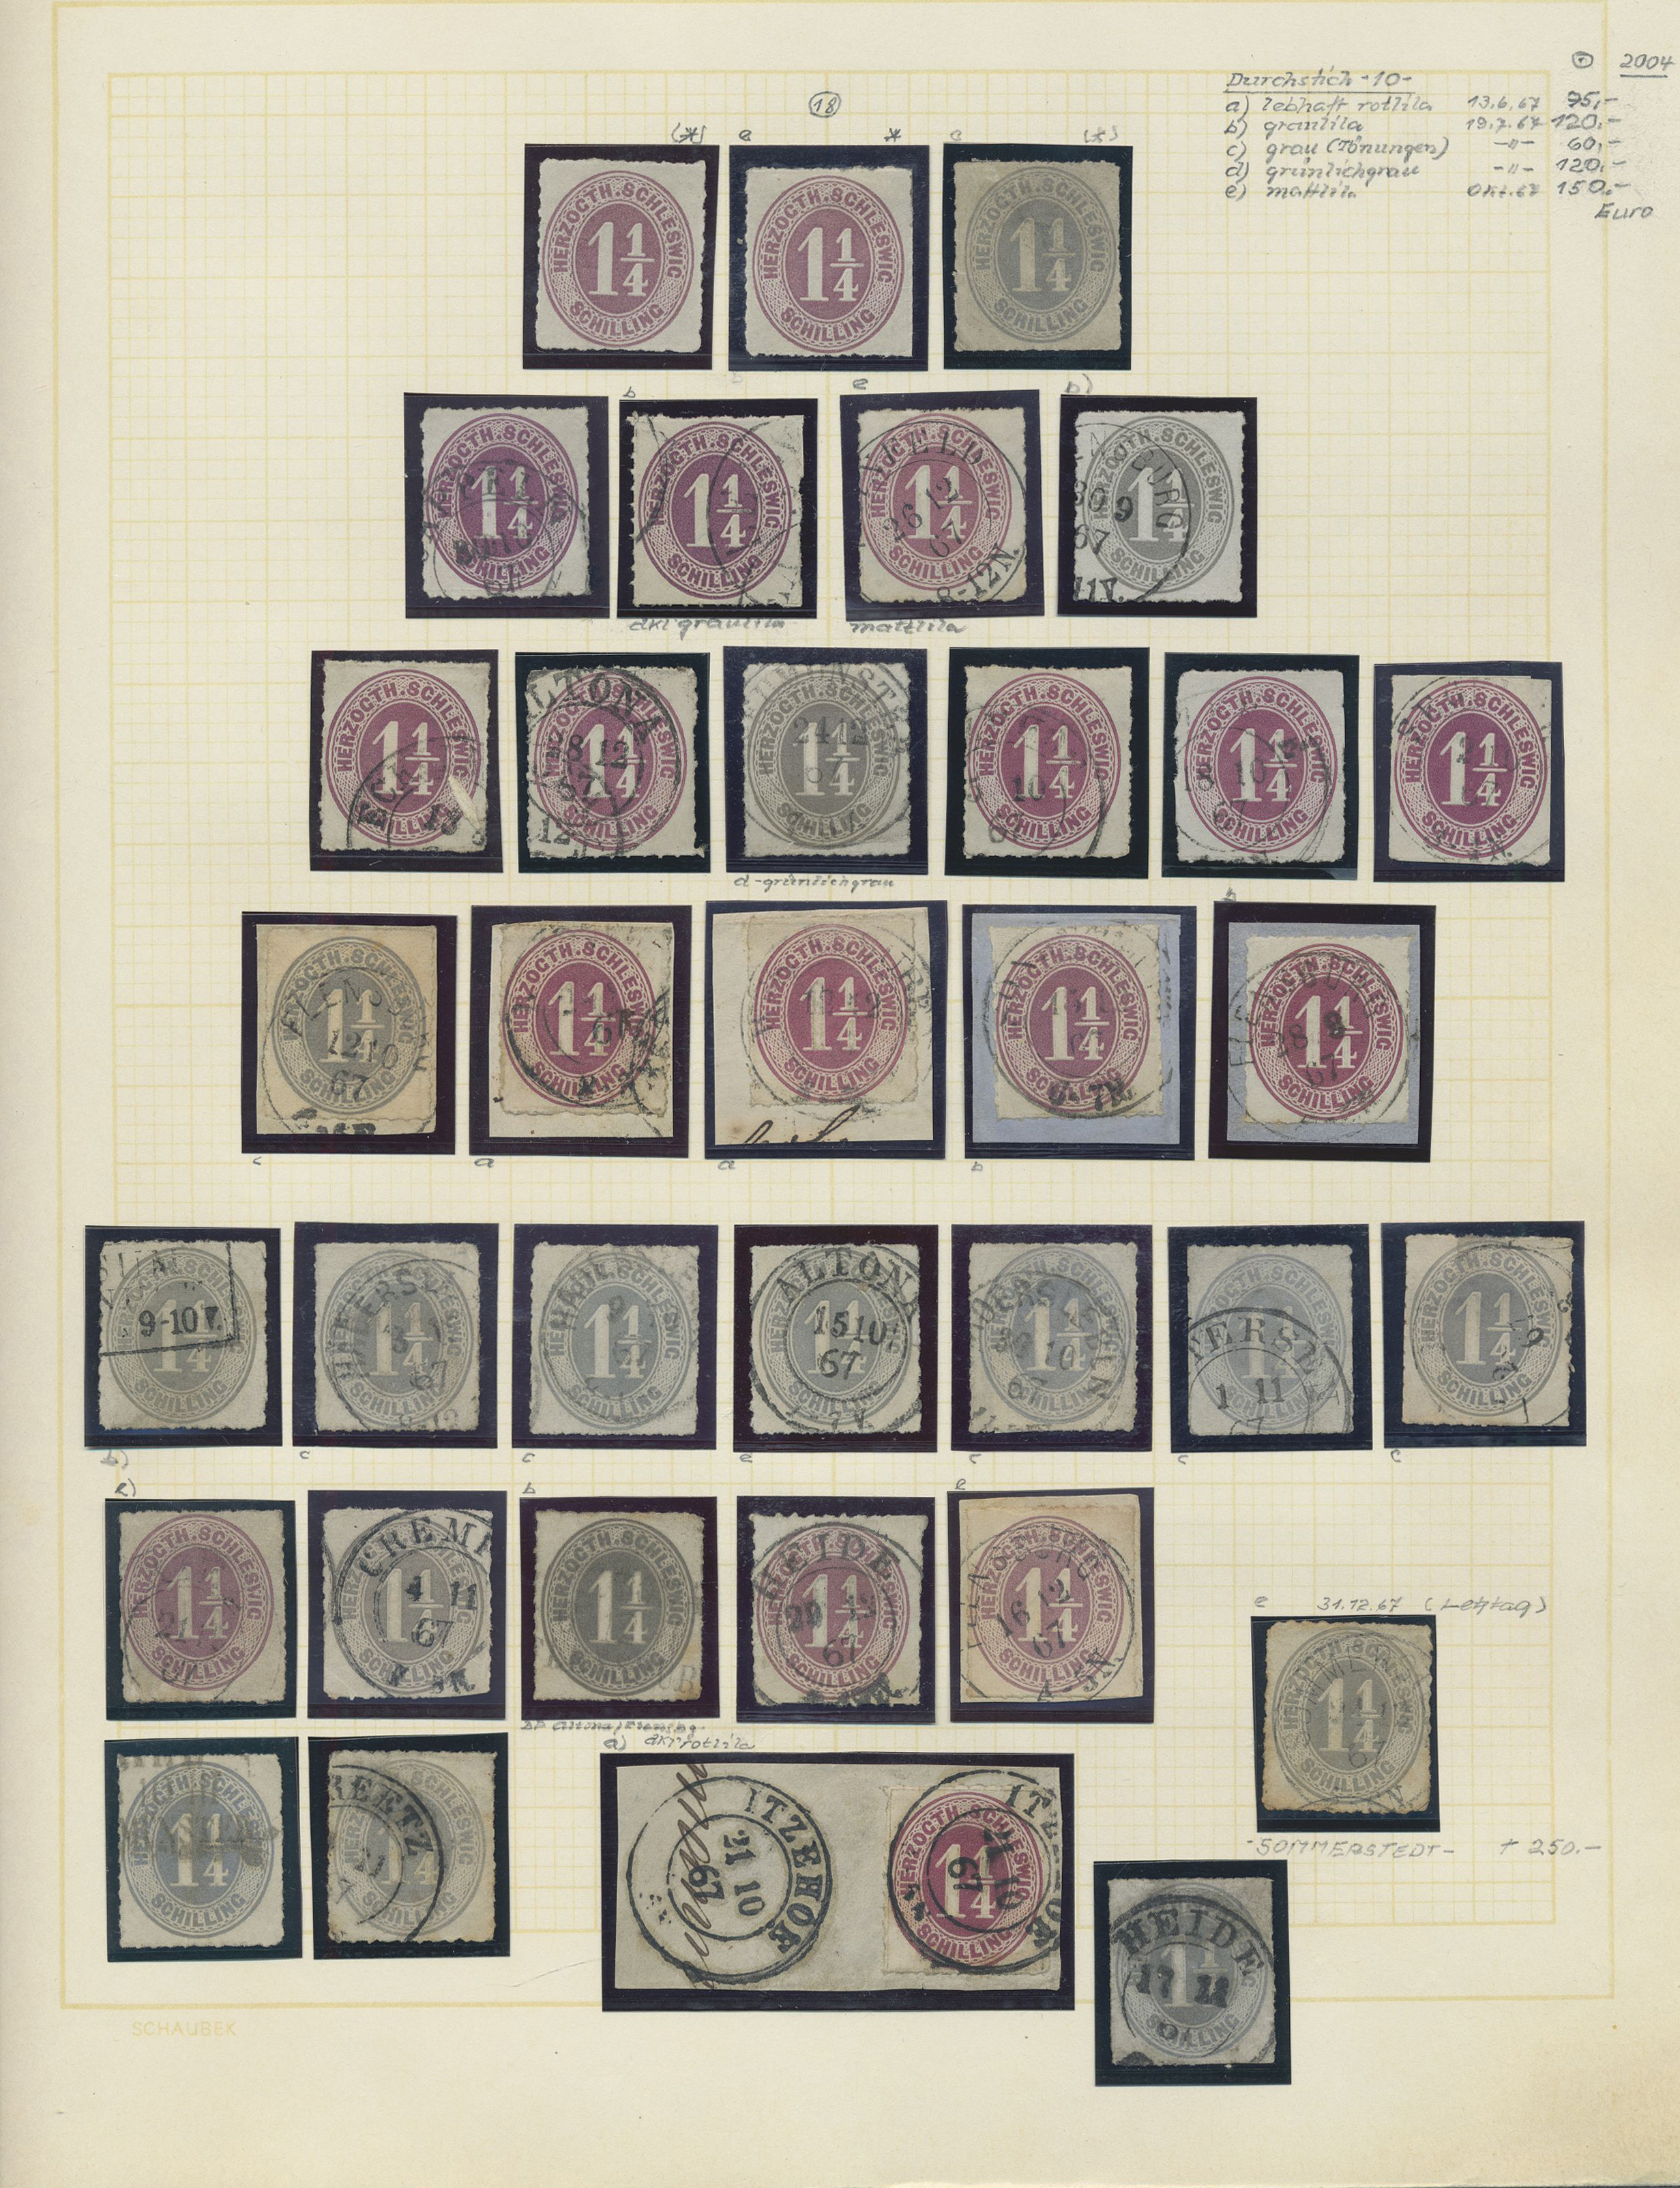 Lot 36473 - Schleswig-Holstein - Marken und Briefe  -  Auktionshaus Christoph Gärtner GmbH & Co. KG Collections Germany,  Collections Supplement, Surprise boxes #39 Day 7